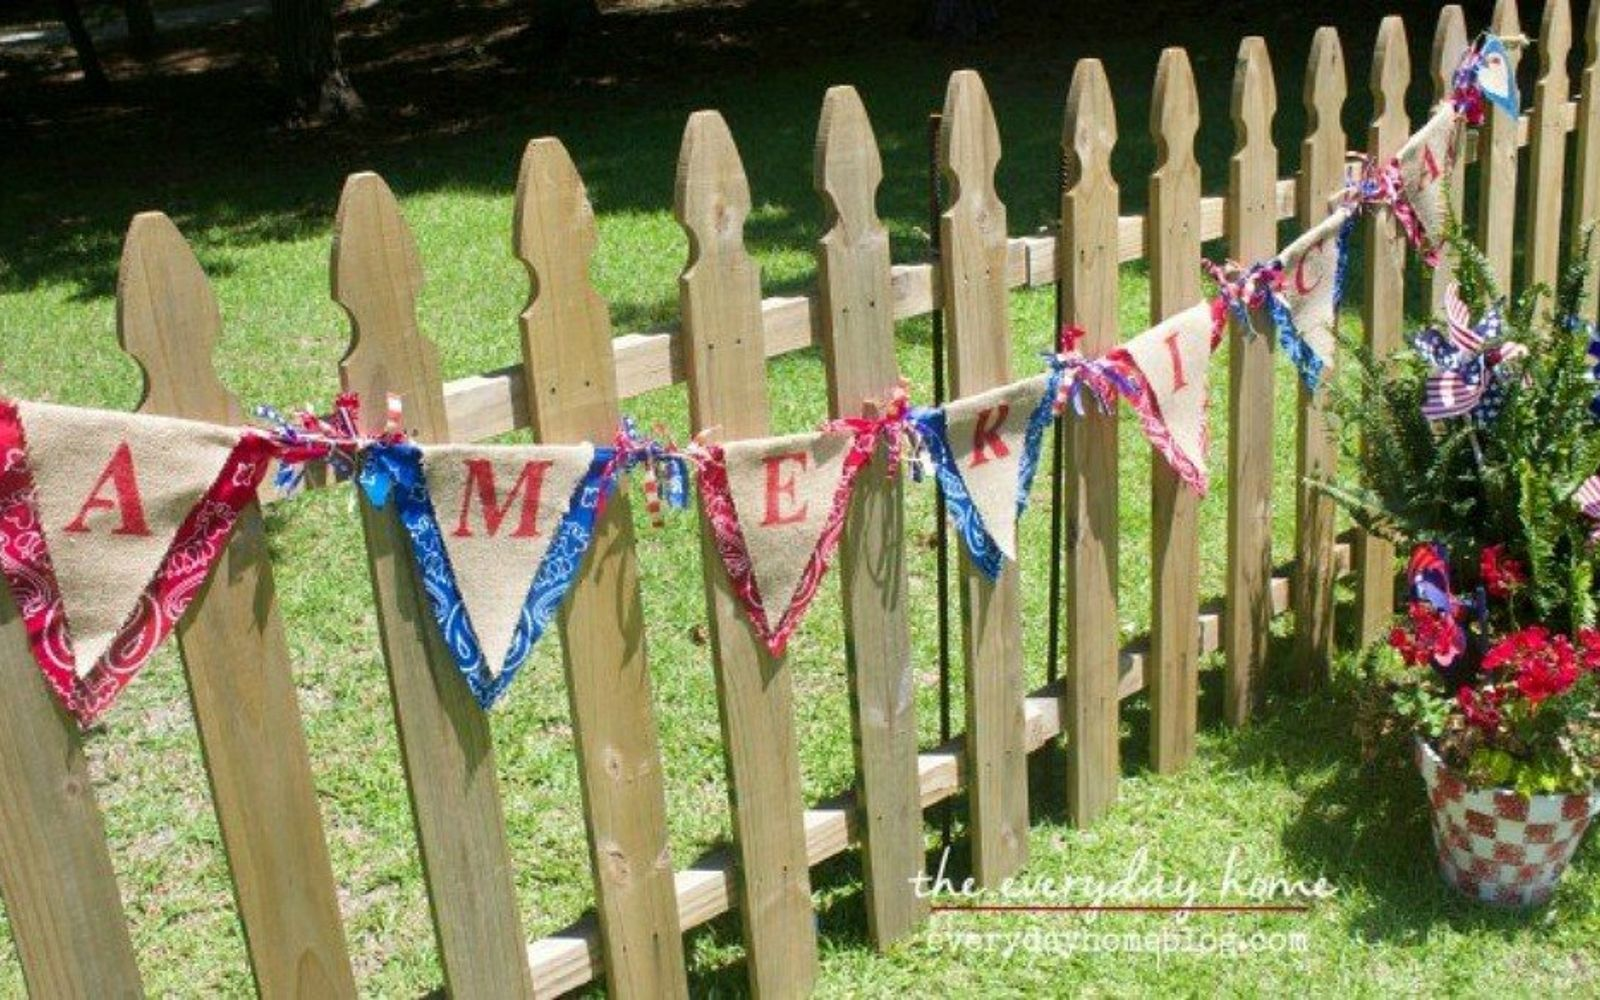 s 13 july 4th decorations that will blow your bbq guests away, crafts, outdoor living, seasonal holiday decor, String bandanas into a patriotic banner